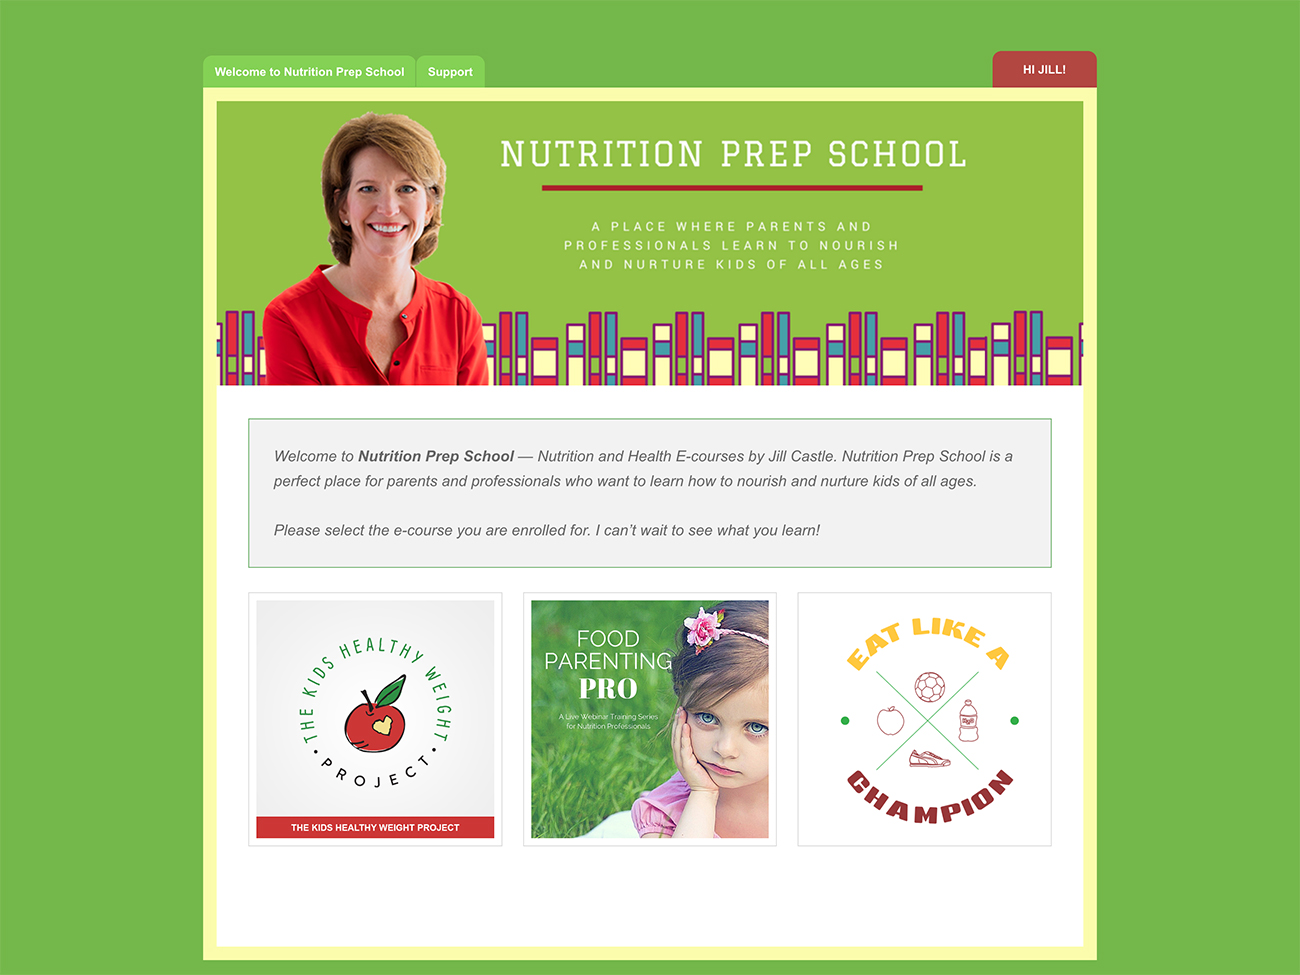 Nutrition Prep School, E-courses by Jill Castle